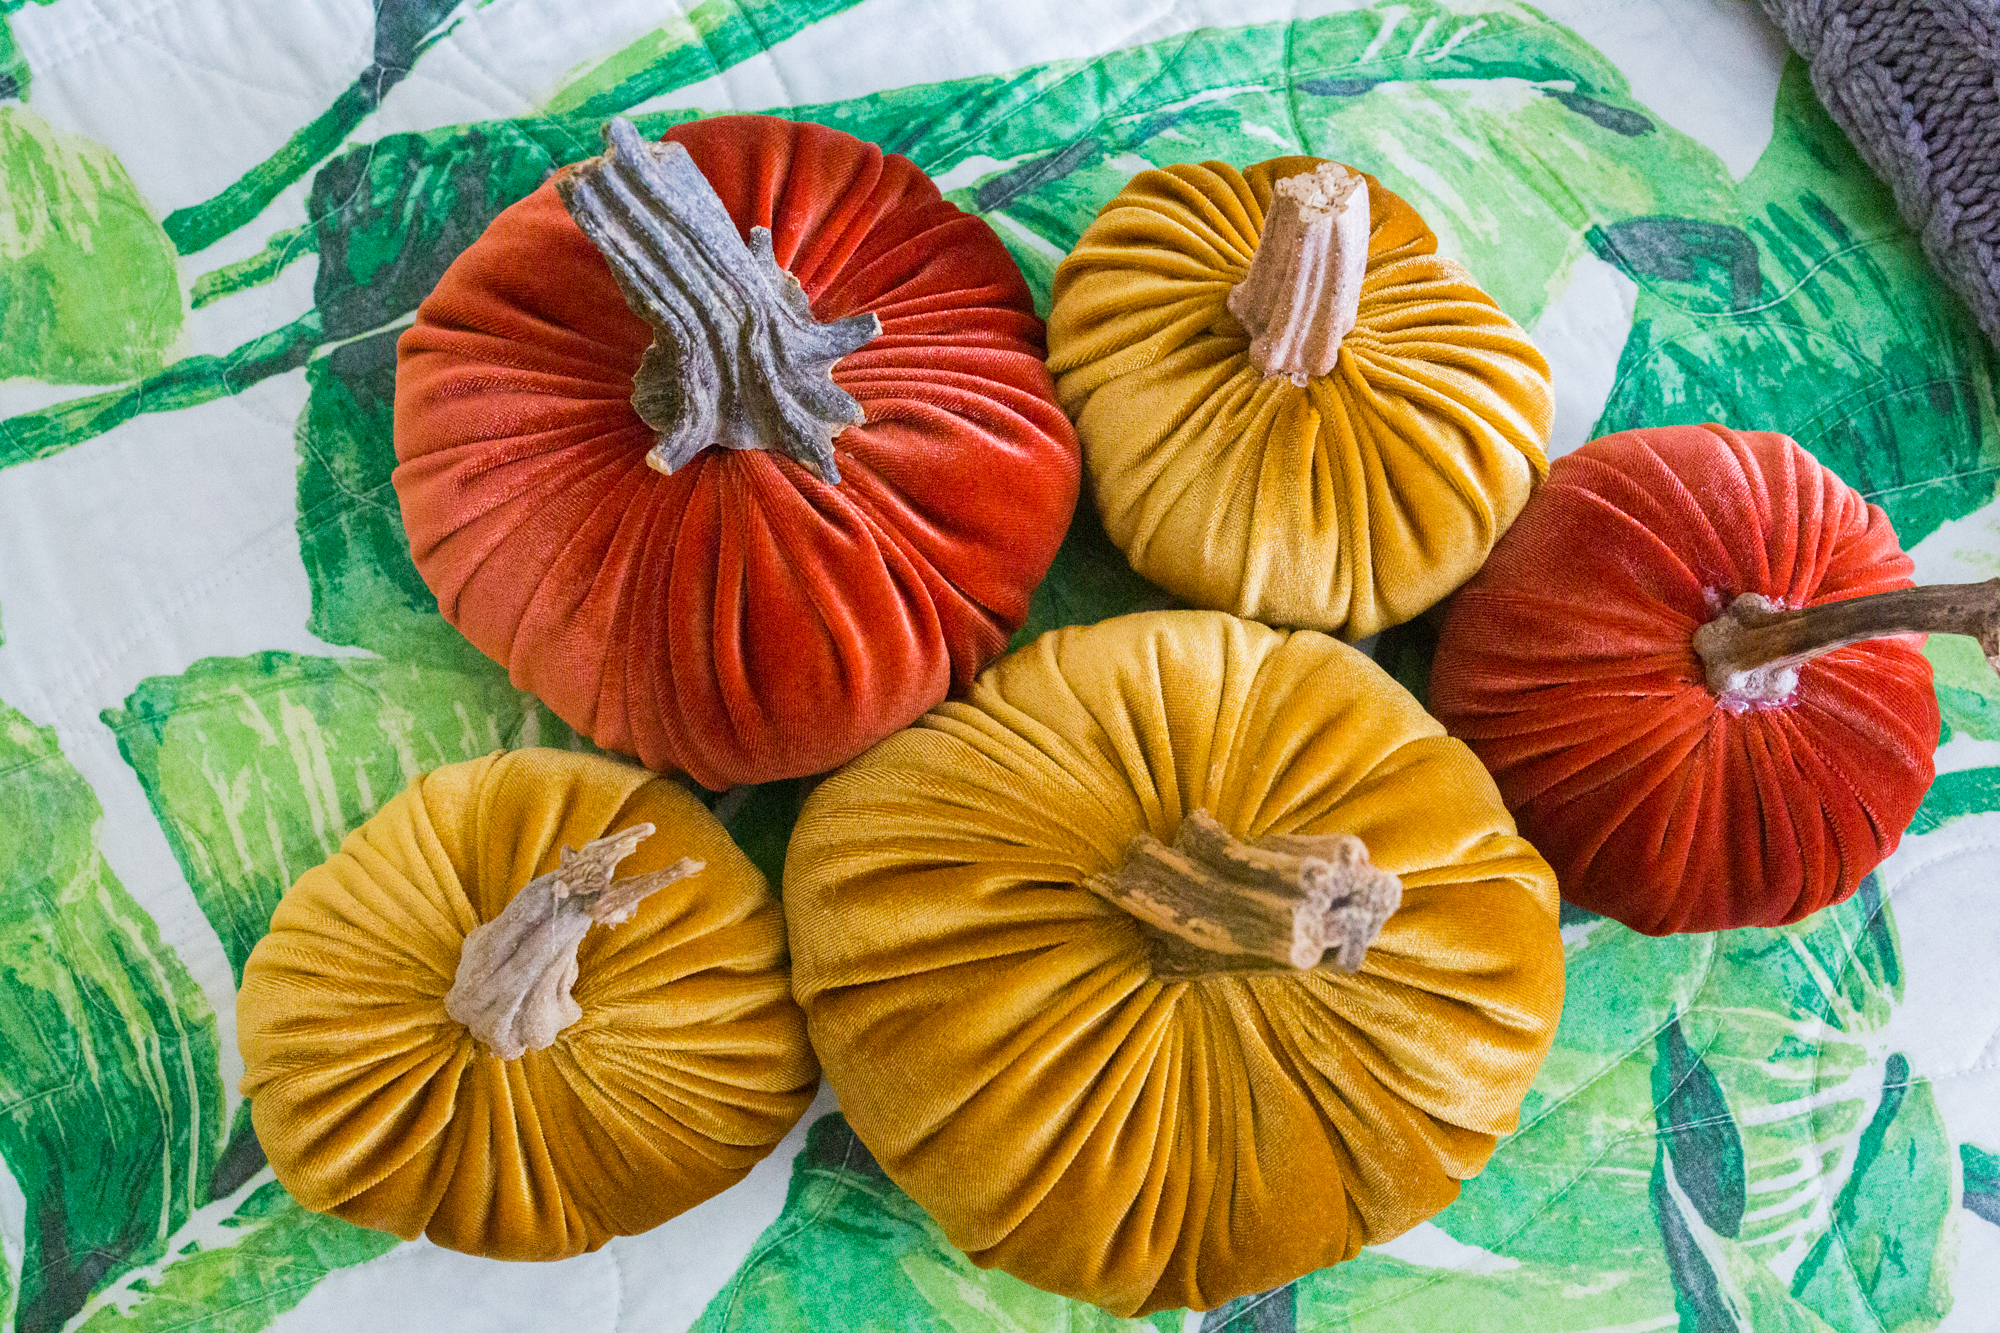 How to Make DIY Velvet Pumpkins / Fabric Pumpkin DIY Velvet / Decorating Ideas / DIY Fall Decorations / Autumn Decorating / Woven Pumpkin - Sunshine Style, A Florida based Fashion blog by Katie